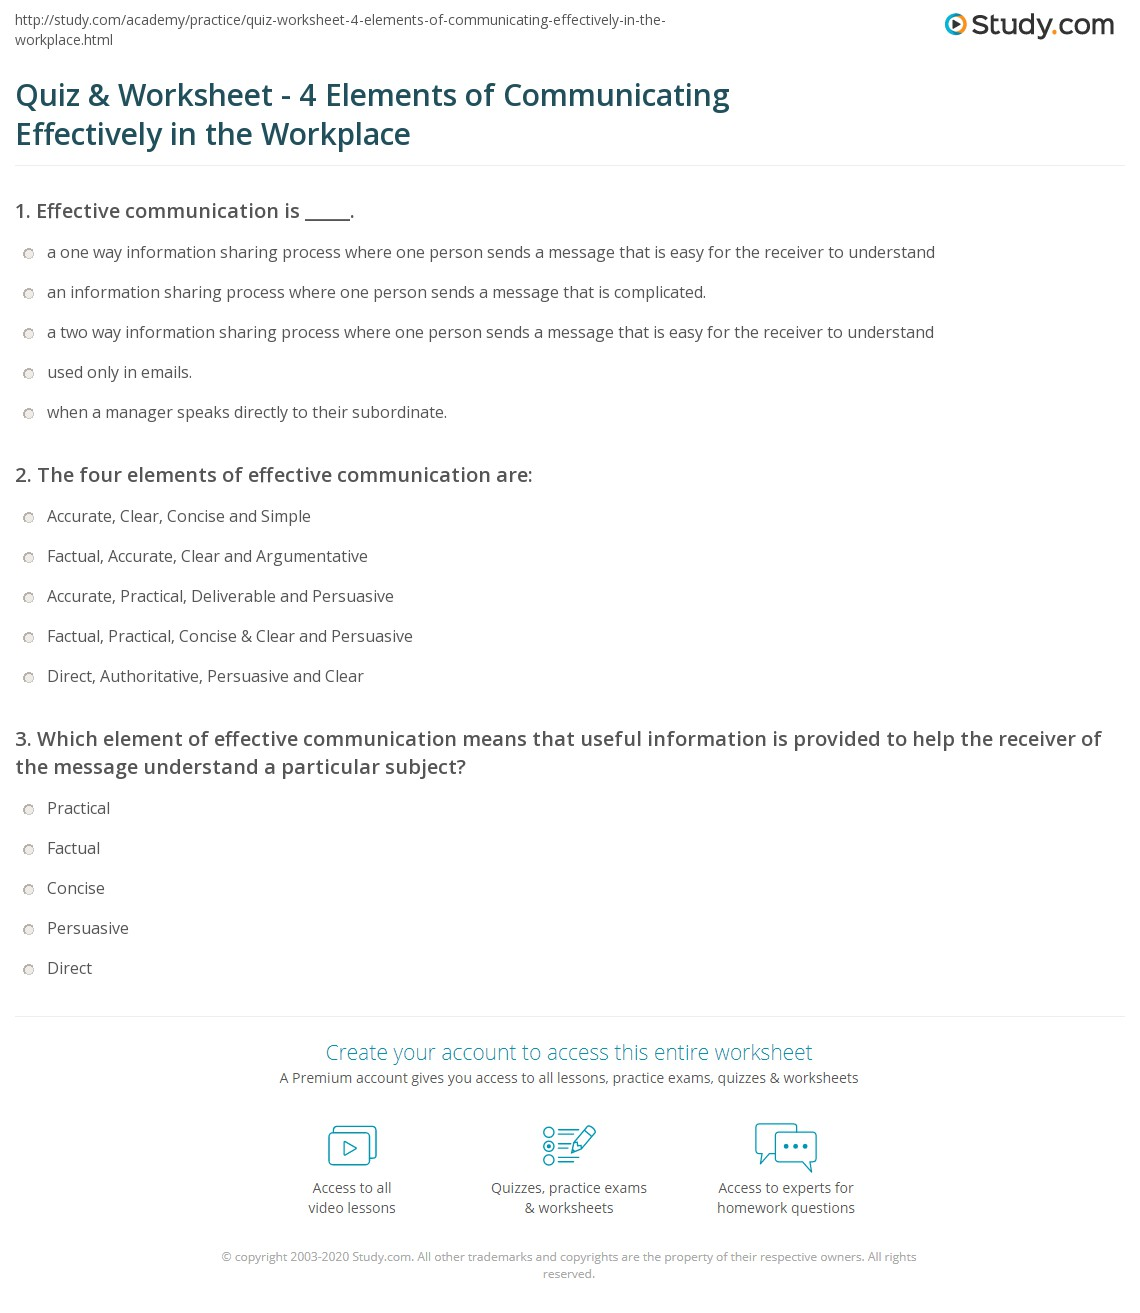 Print Elements of Effective Communication in the Workplace Worksheet